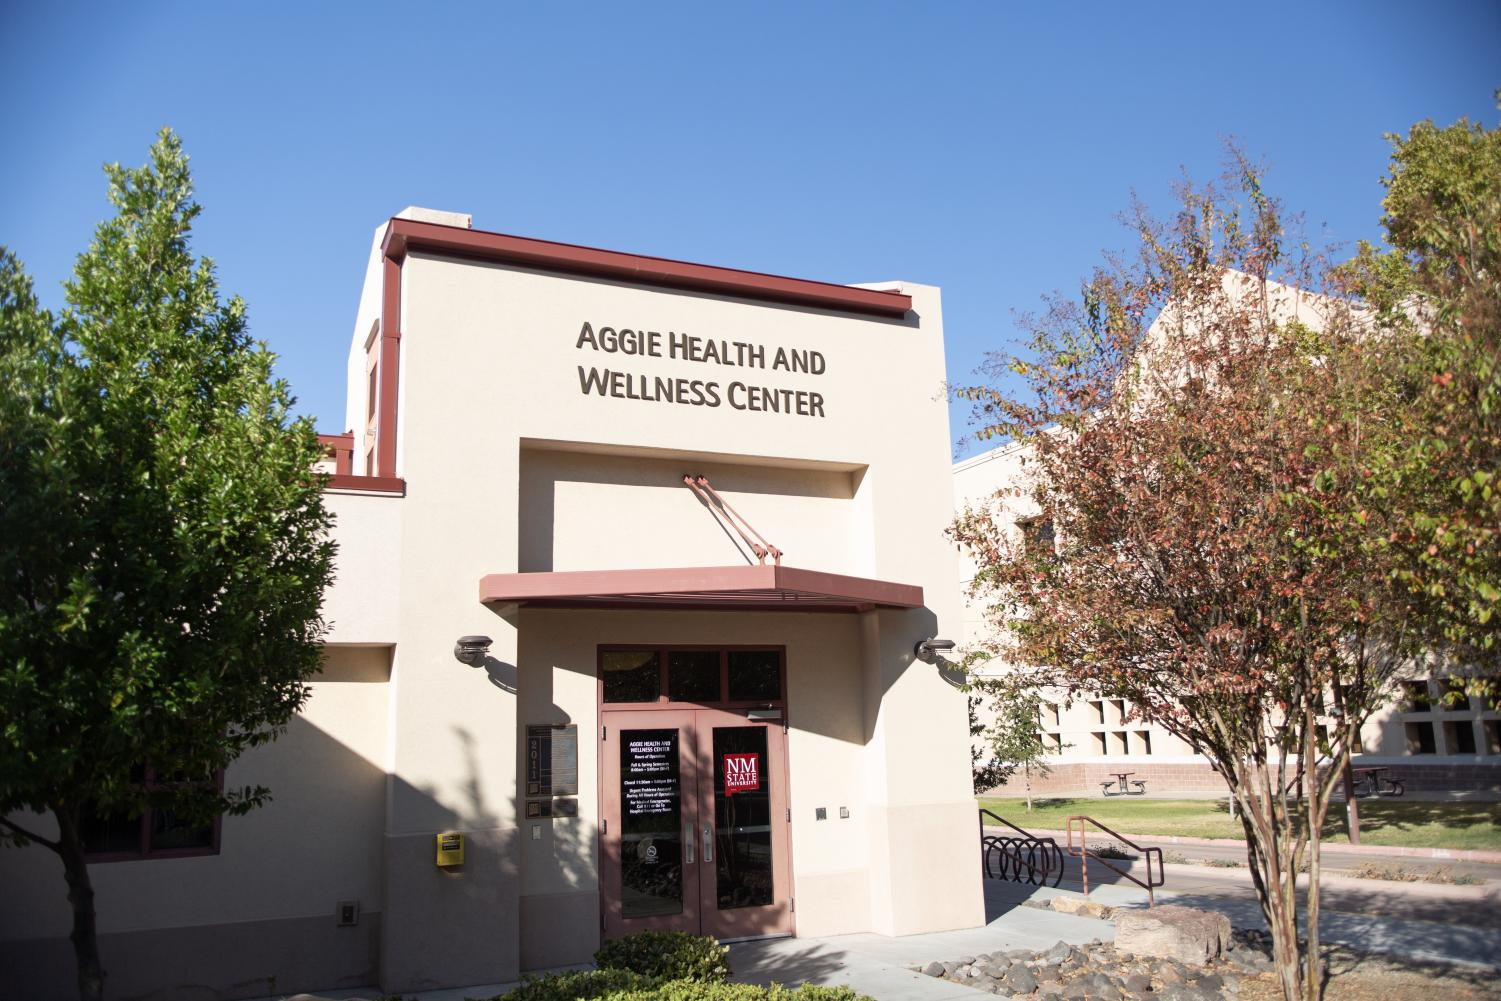 The Aggie Health and Wellness center is advising students to receive the flu shot and seek immediate medical treatment for flu symptoms.